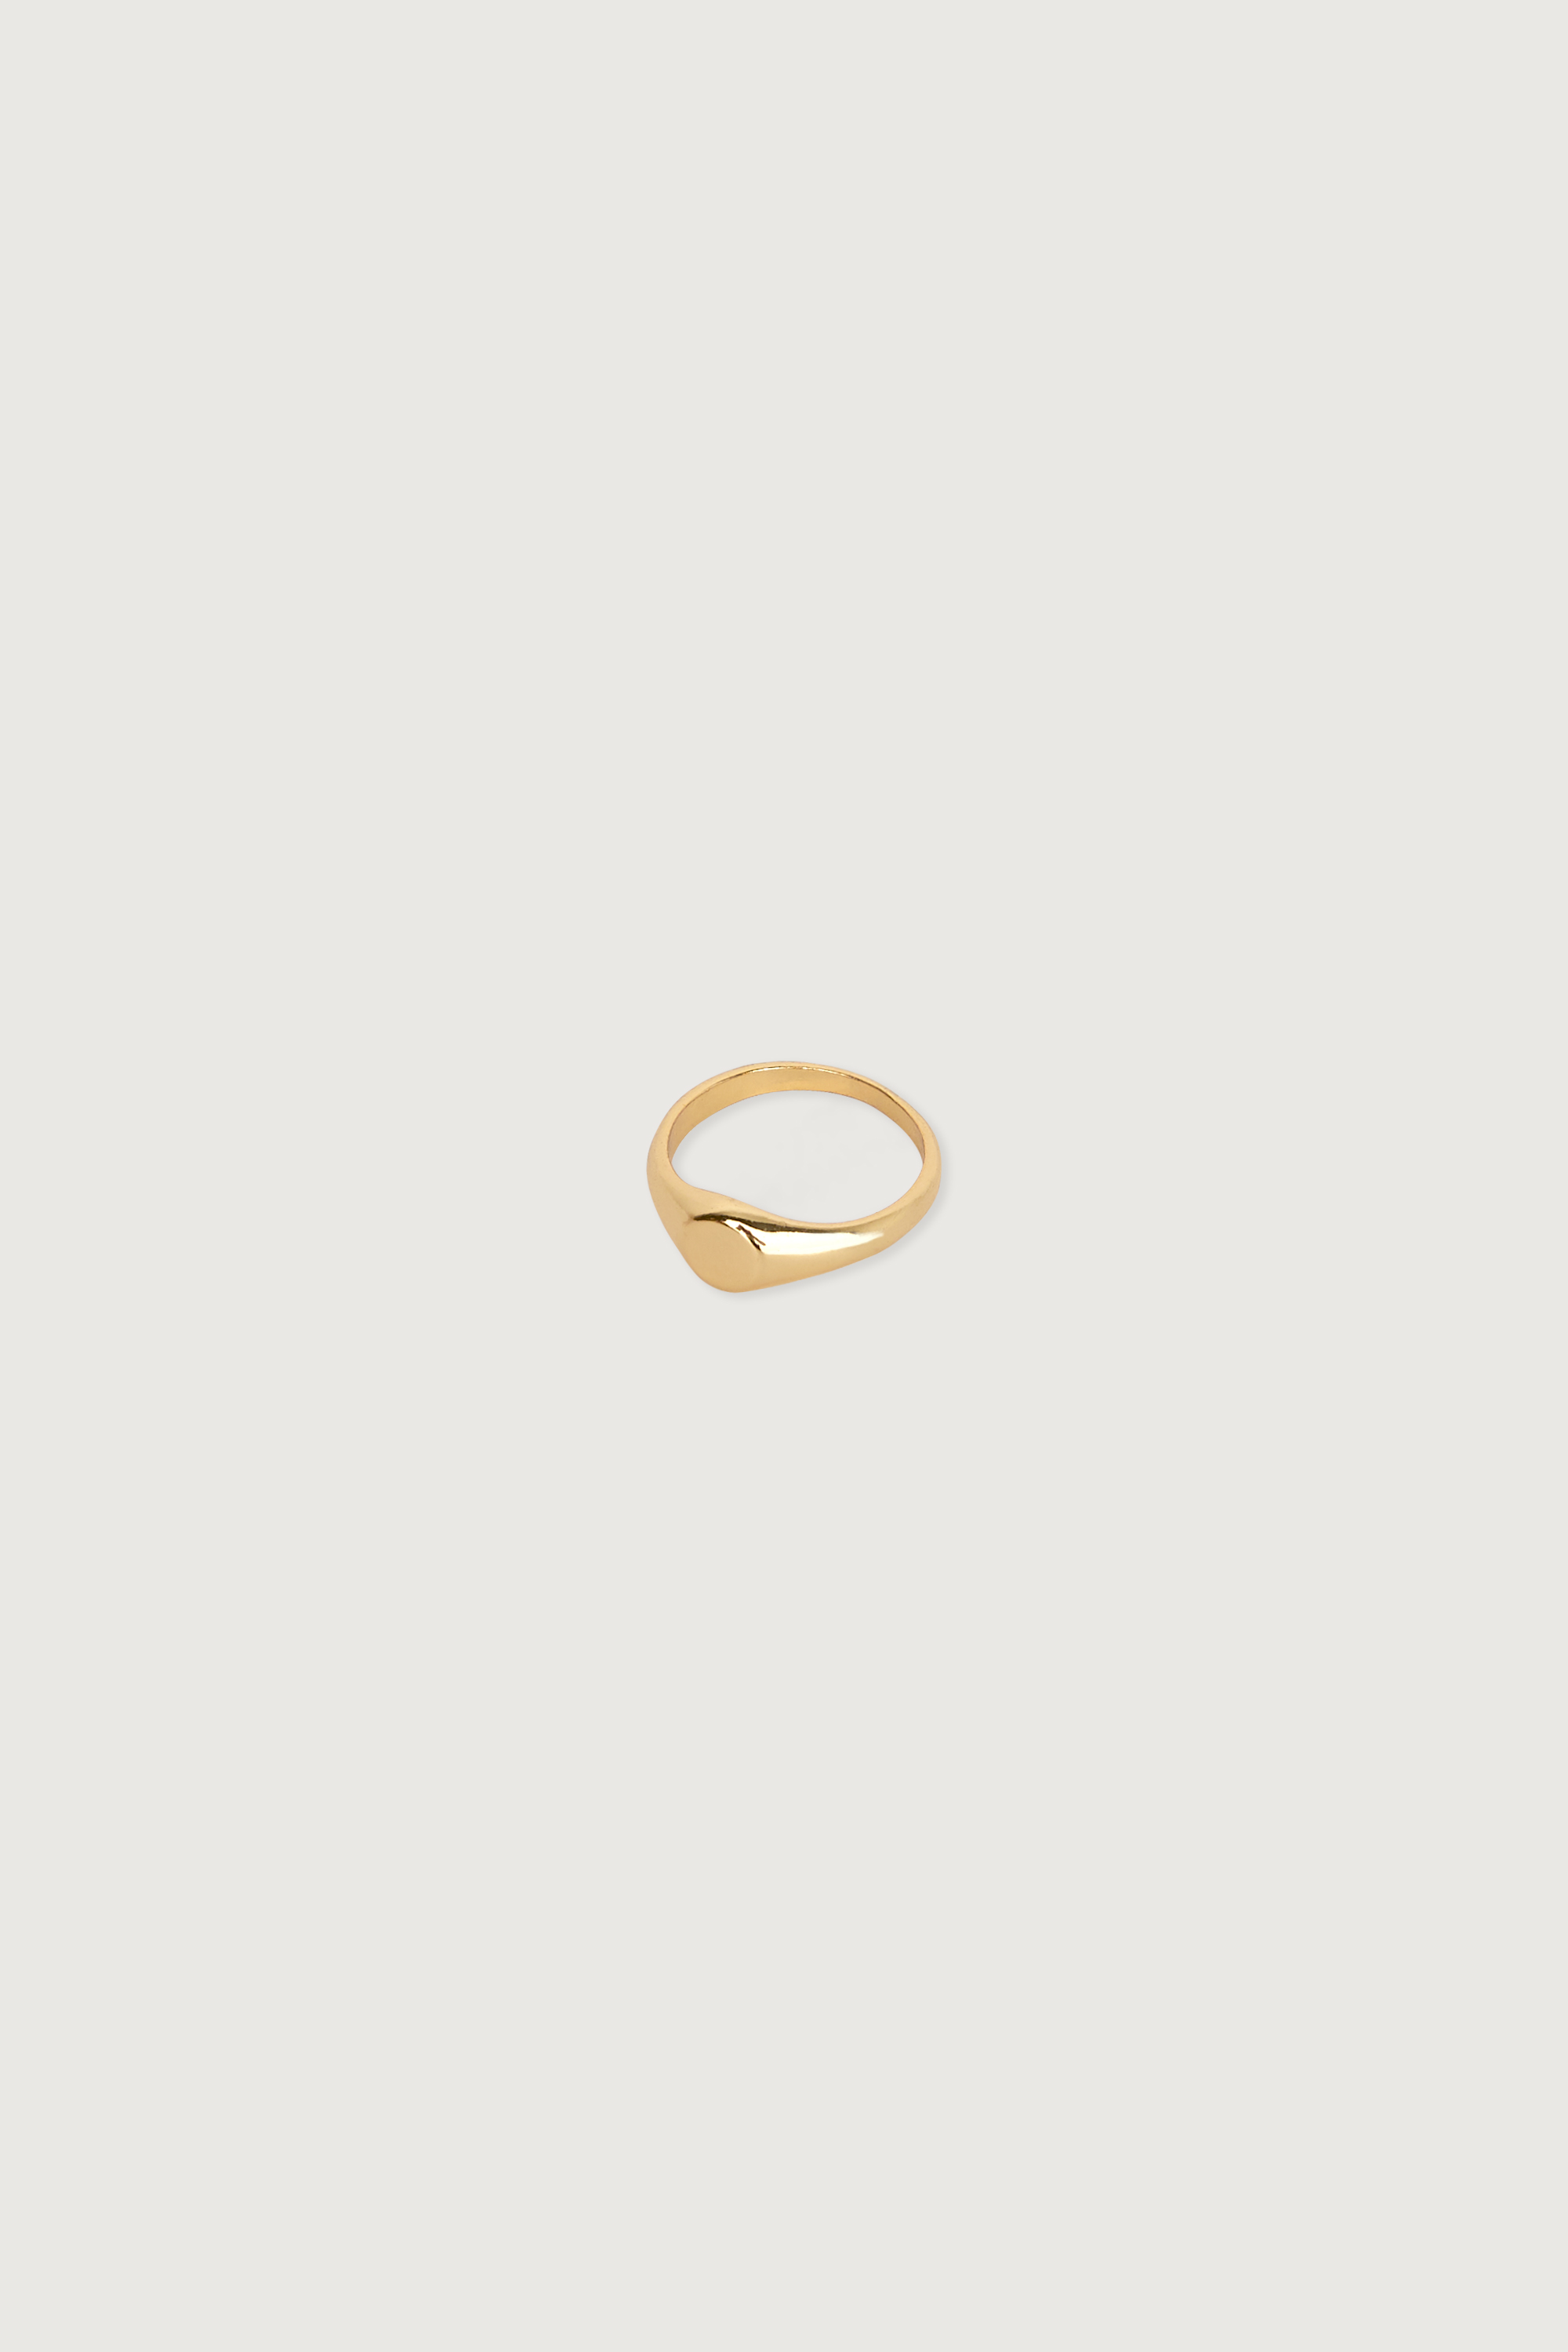 Ring 3413 Gold 1